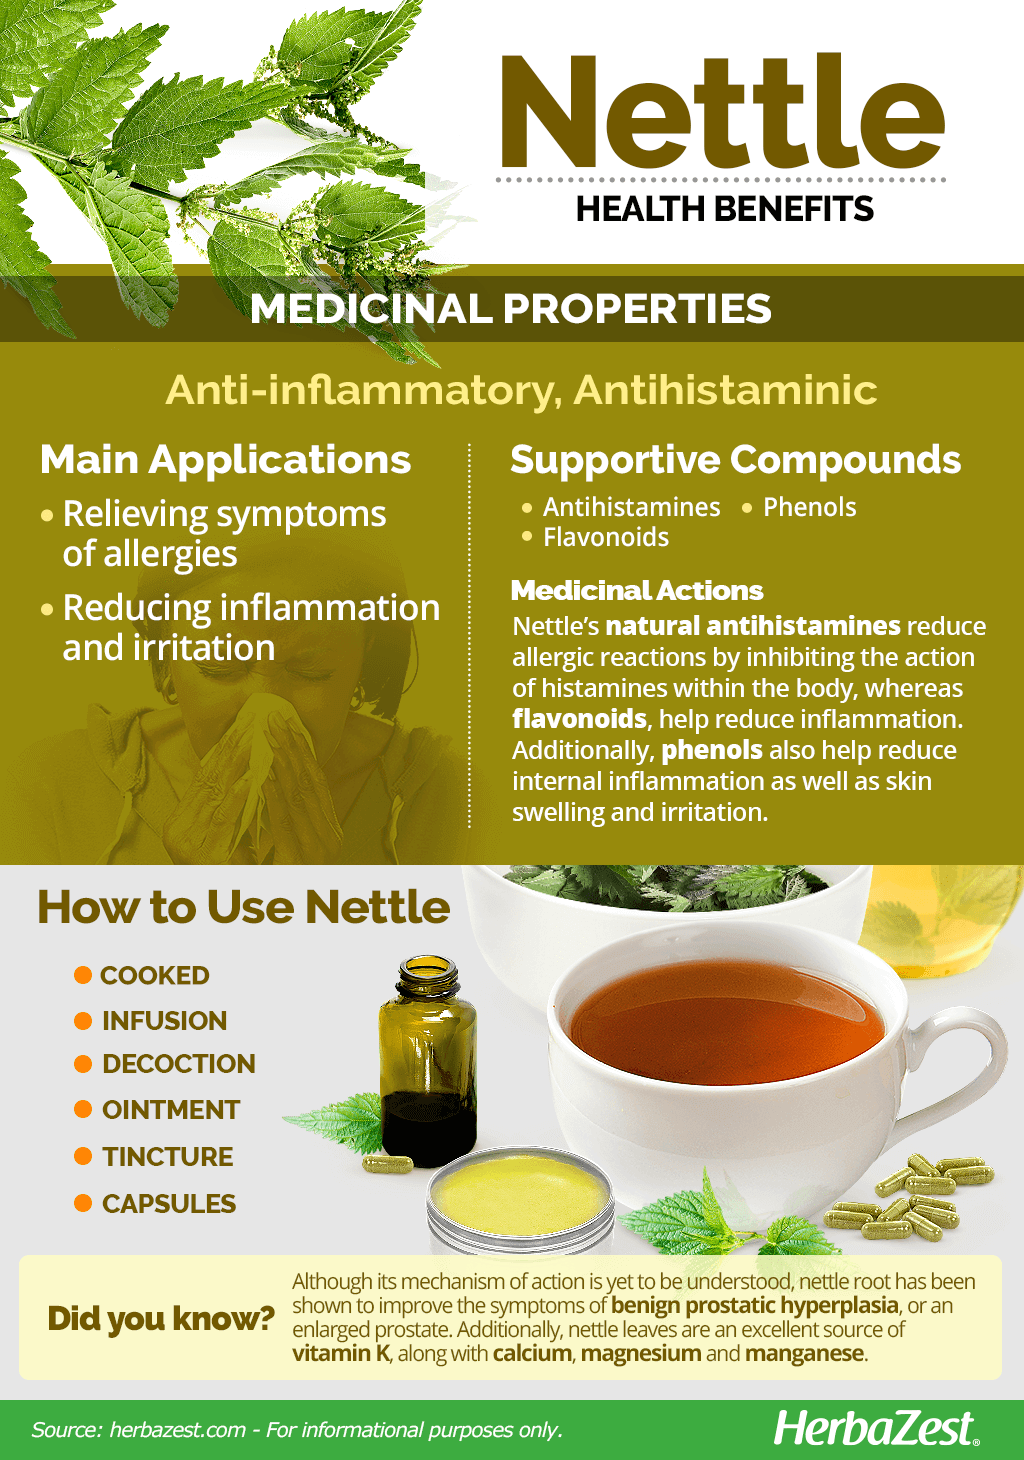 All About Nettle